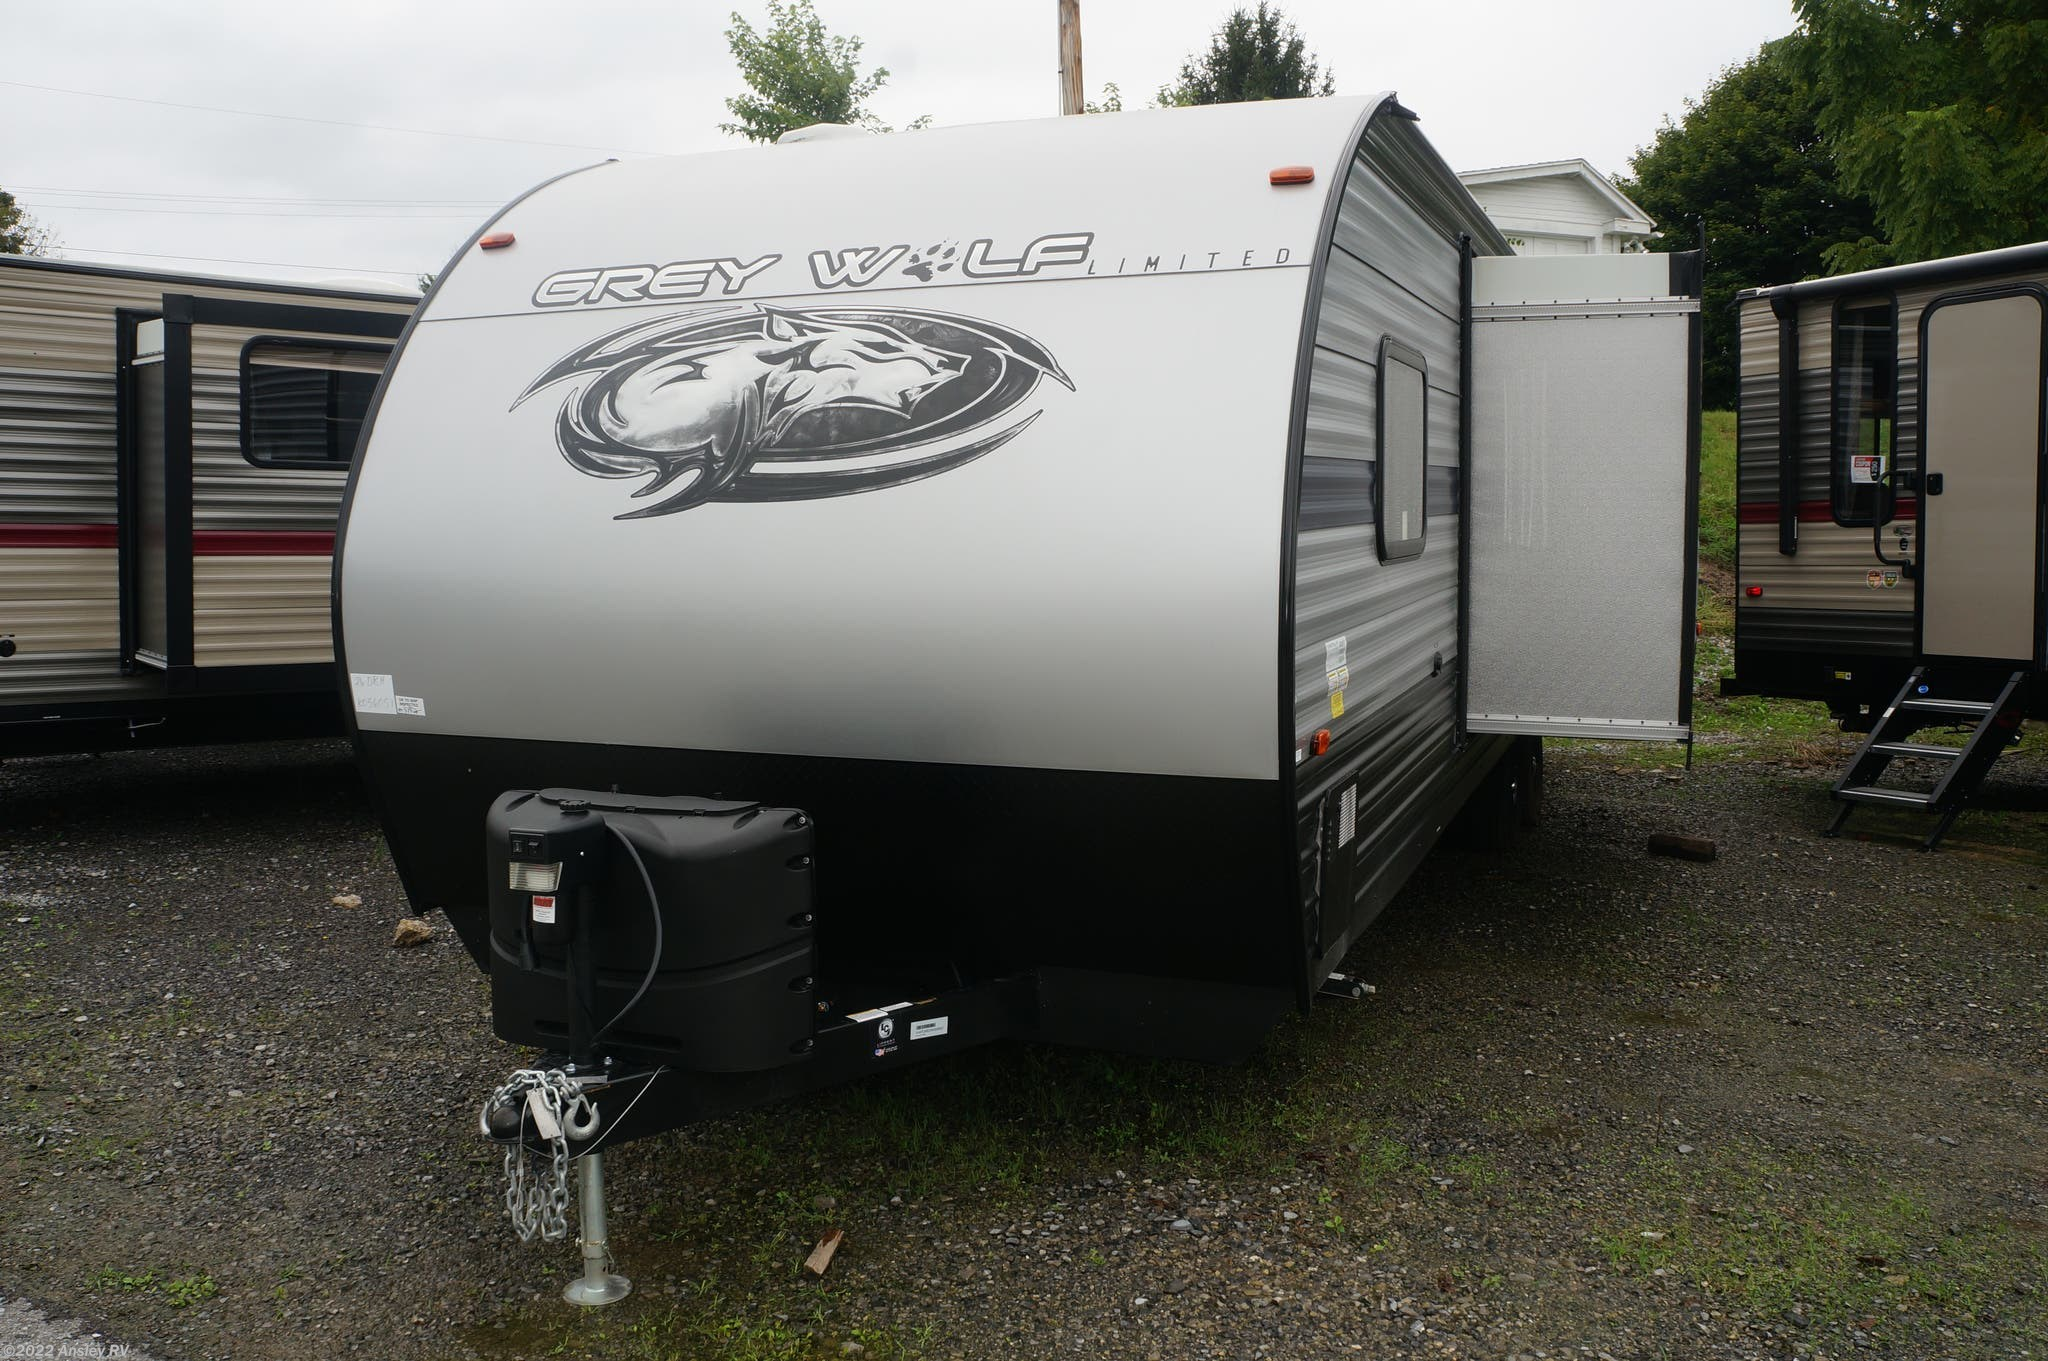 Image result for grey wolf RV